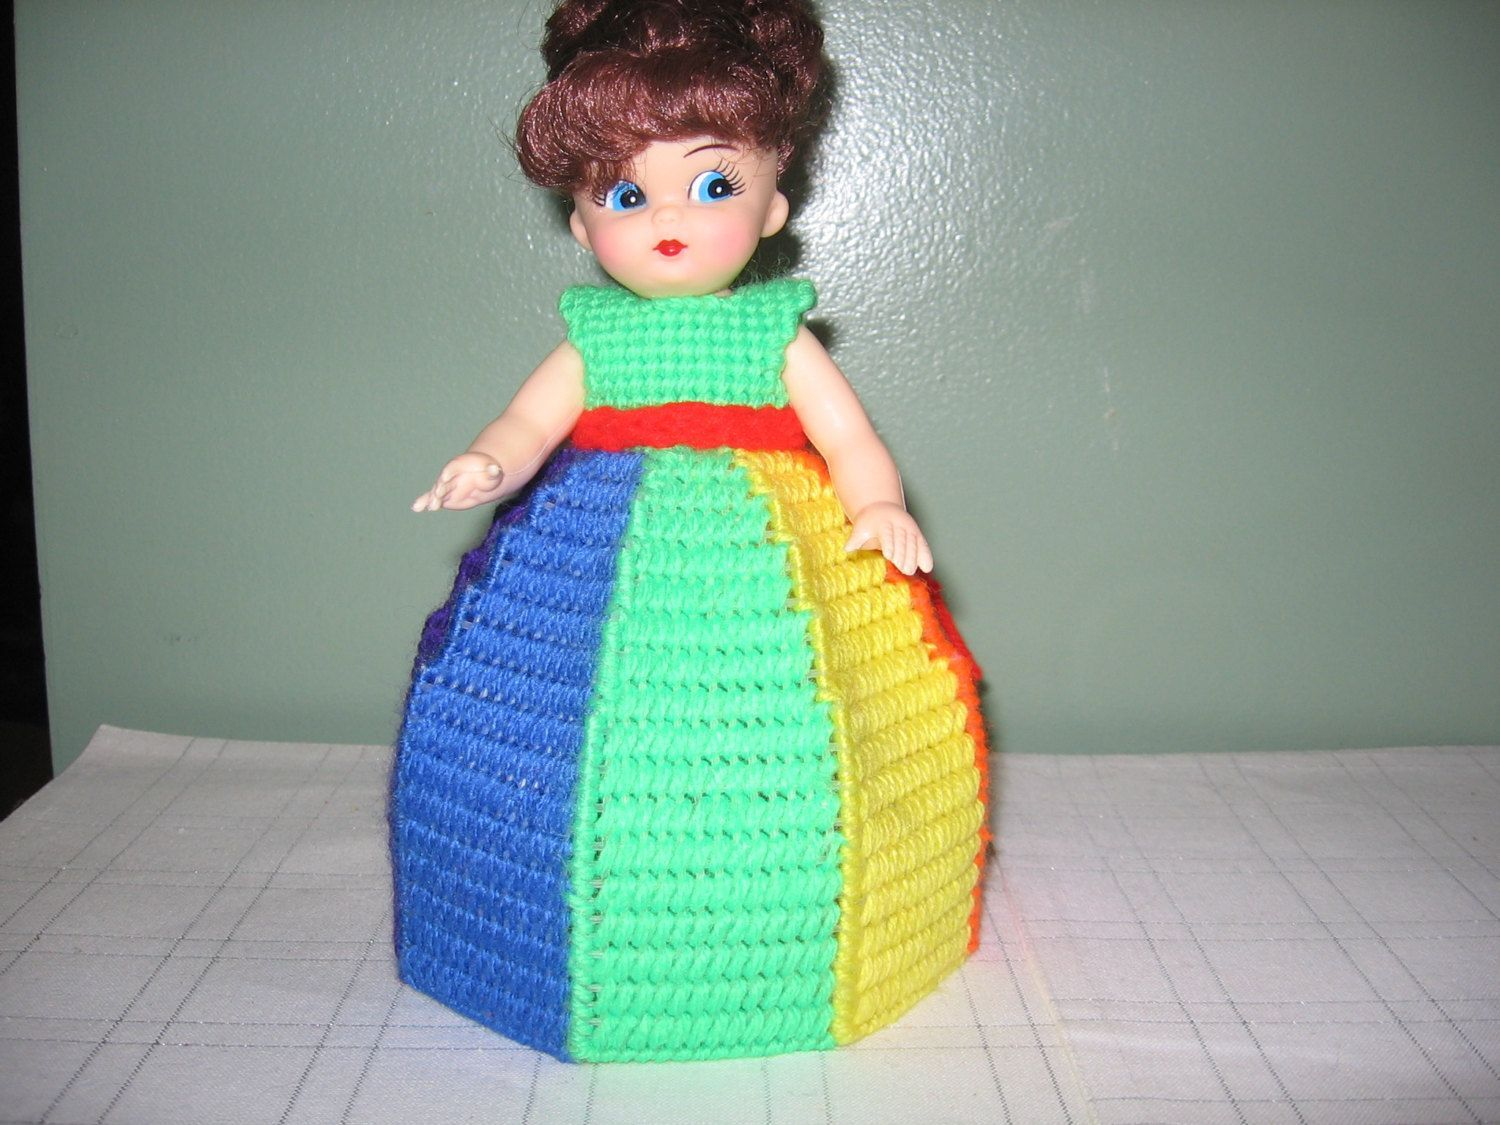 Marriage Equality - Rainbow color Collectible Doll - use for decoration or Air Freshner!! by CreationsbyAMJ on Etsy #airfreshnerdolls Marriage Equality - Rainbow color Collectible Doll - use for decoration or Air Freshner!! by CreationsbyAMJ on Etsy #airfreshnerdolls